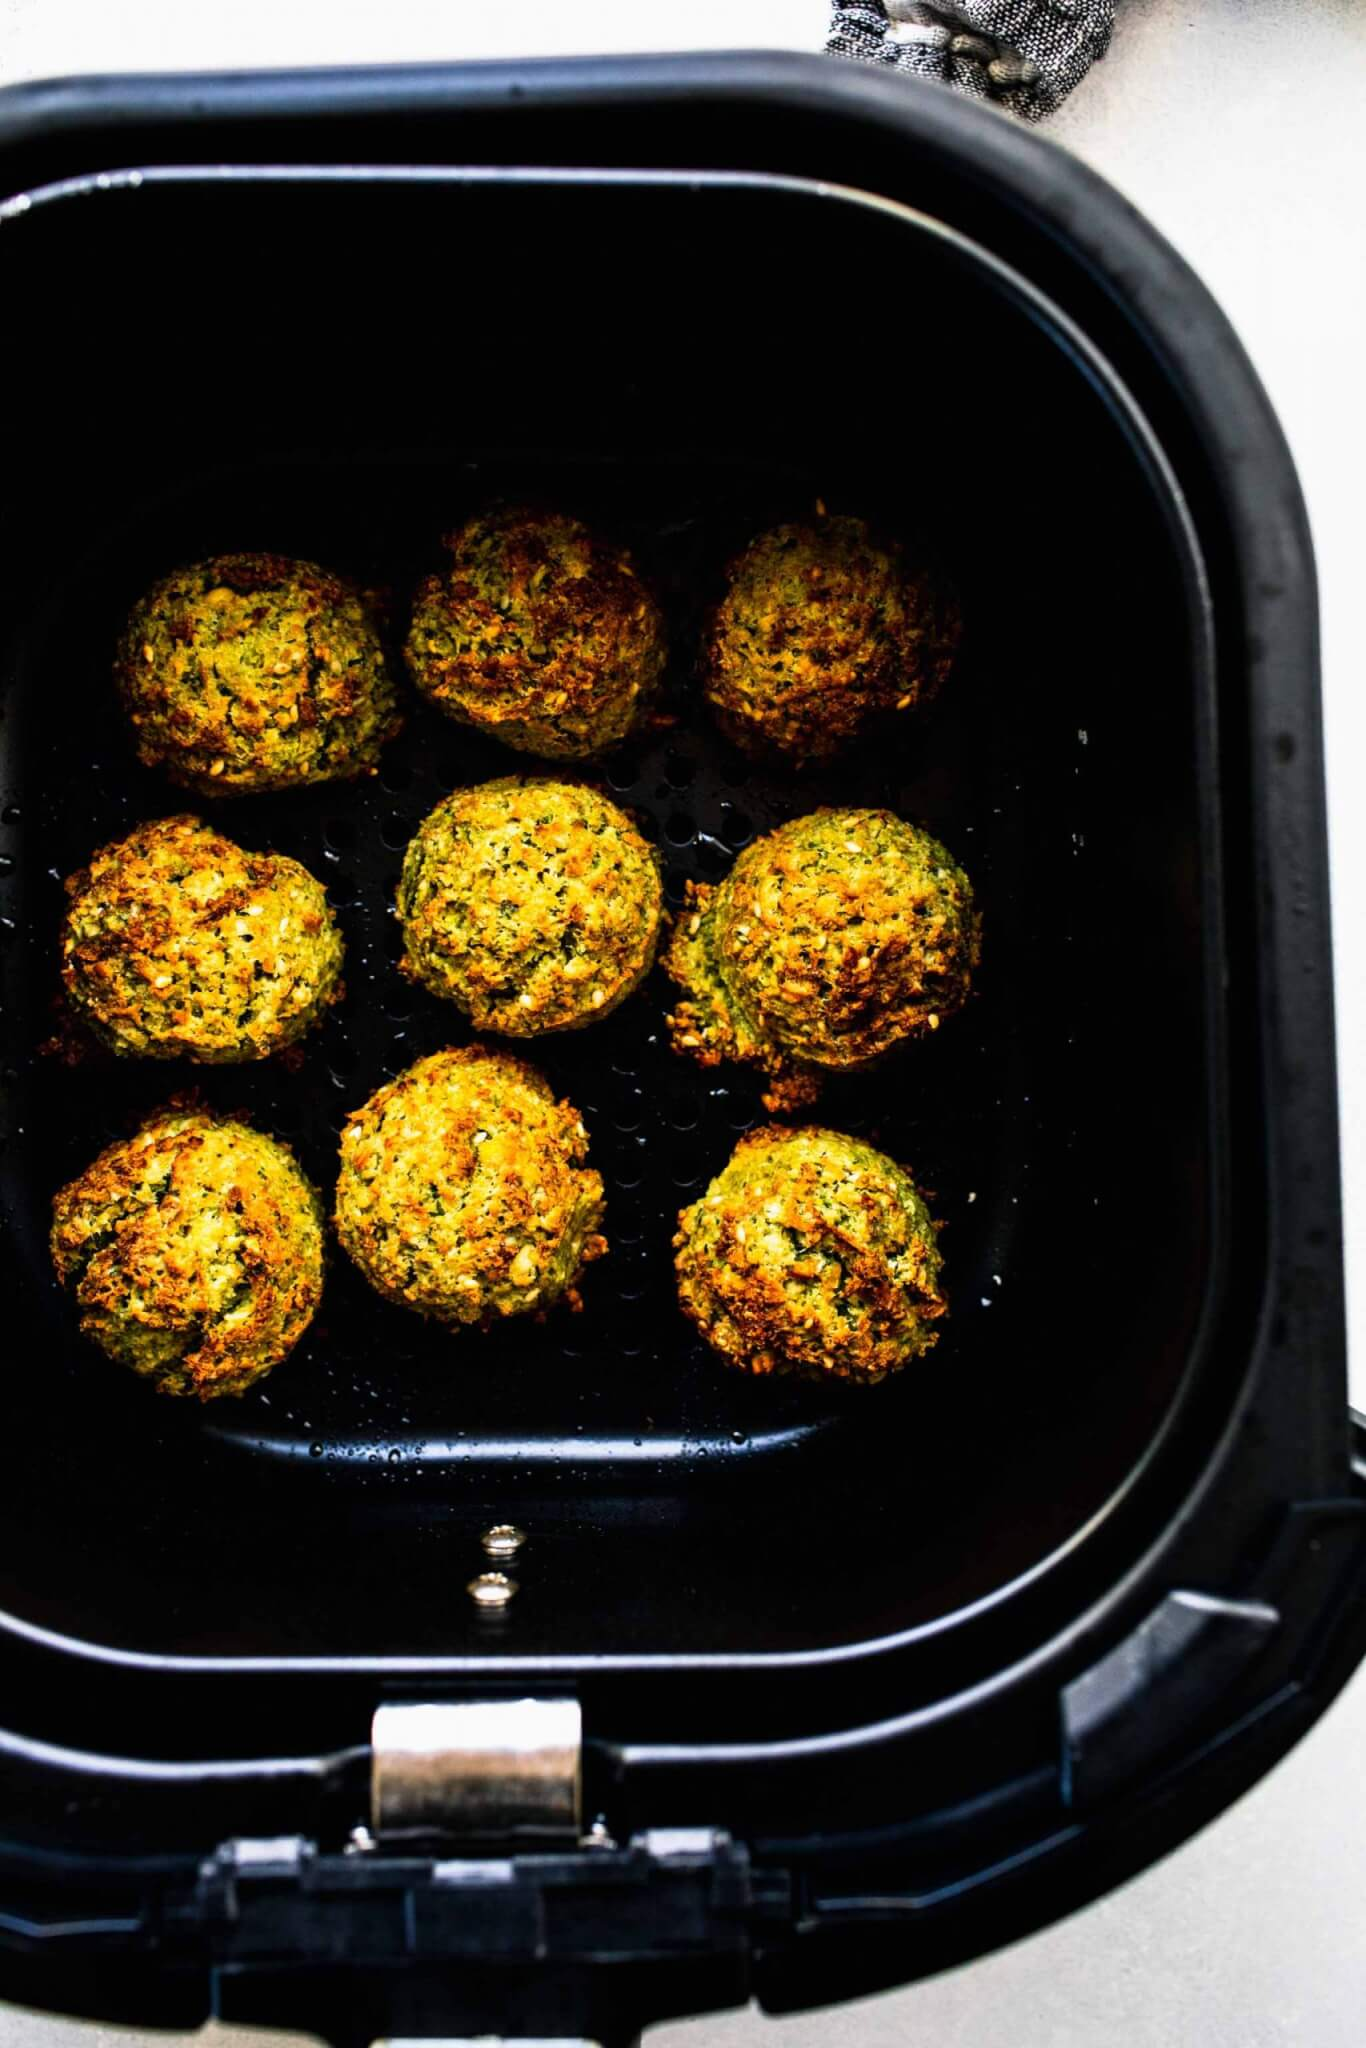 Cooked falafel in air fryer basket.